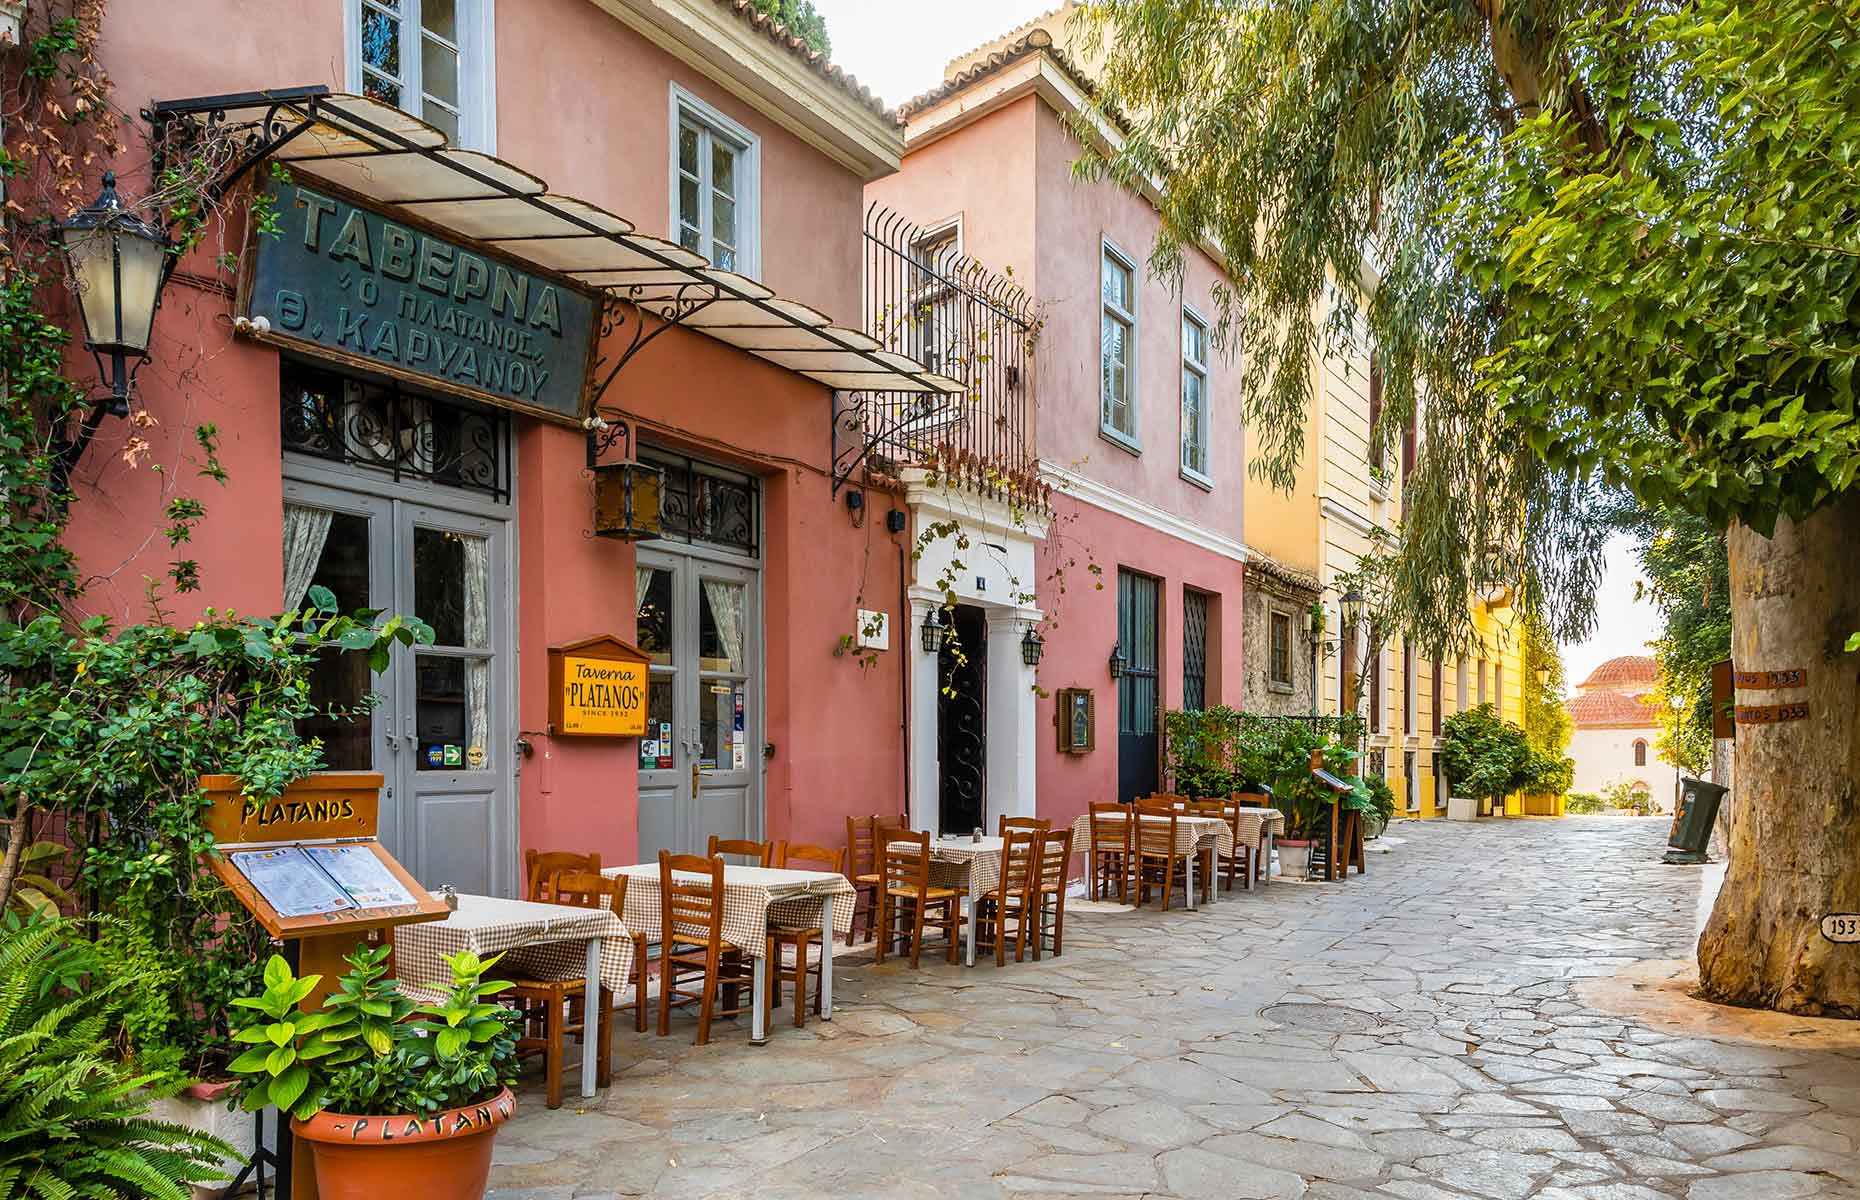 The Plaka district in Athens is a great place to eat out